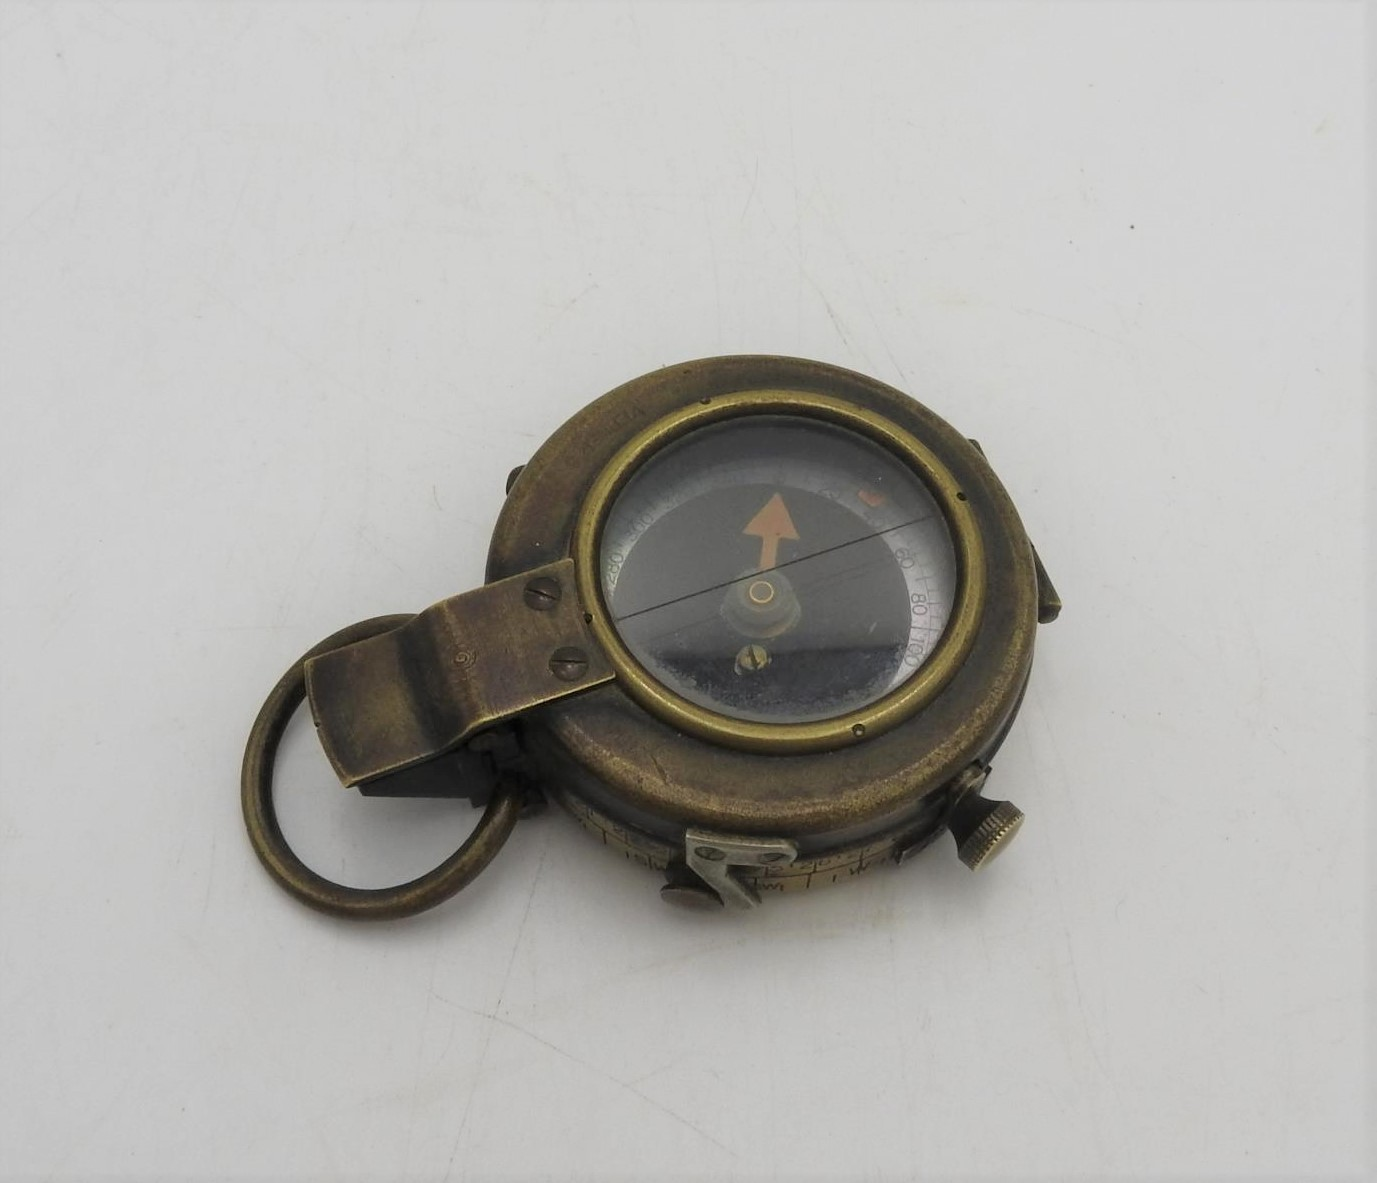 A BRASS FIRST WORLD WAR COMPASS, inscribed on the reverse F-L, No.121057, 1918, 5 cm dia